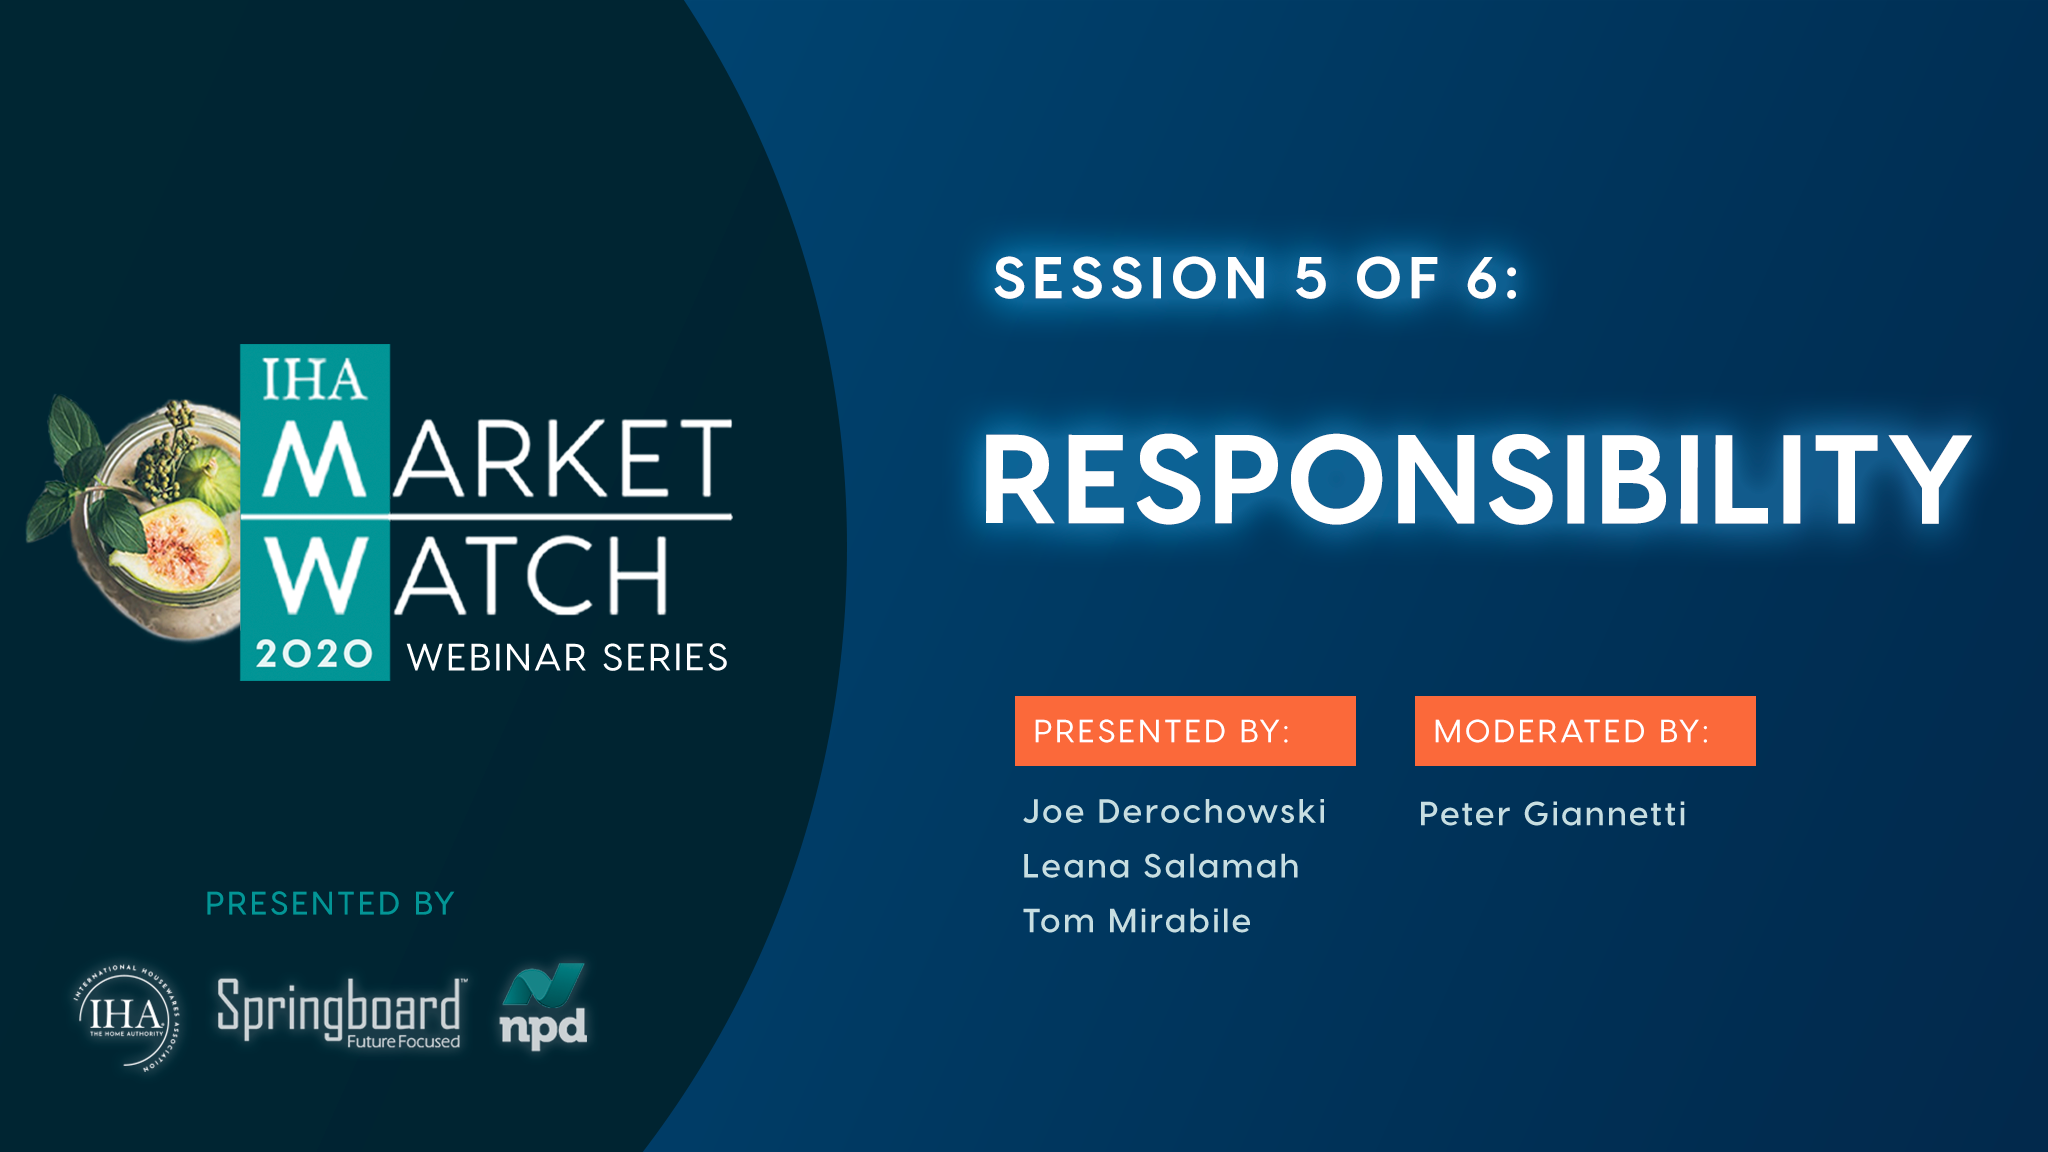 IHA Market Watch - Session 5 - Responsibility